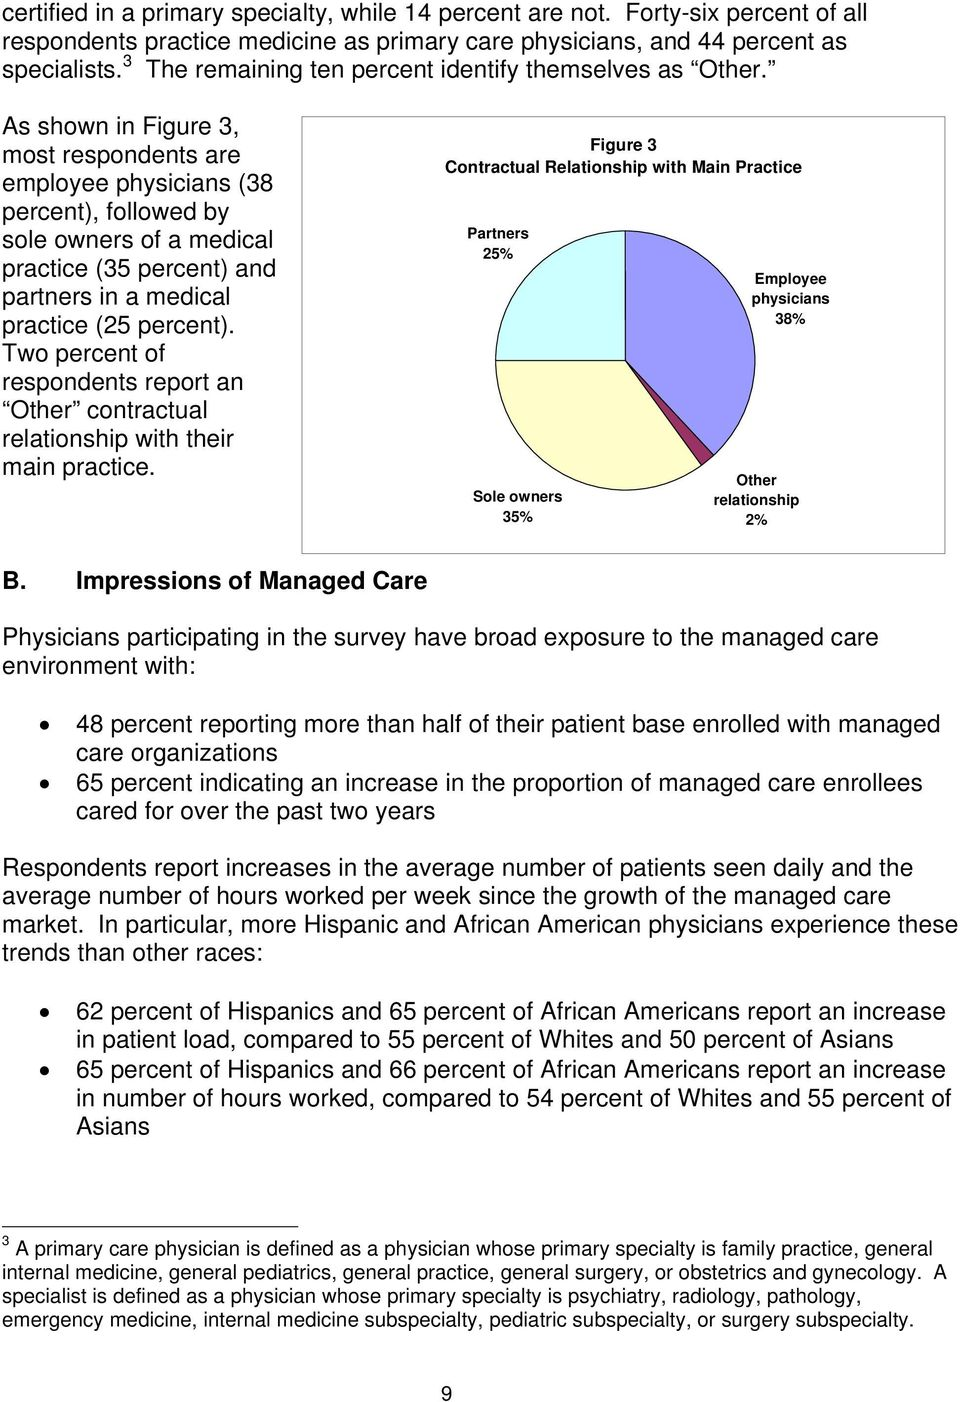 the maryland study on physician experience with managed care